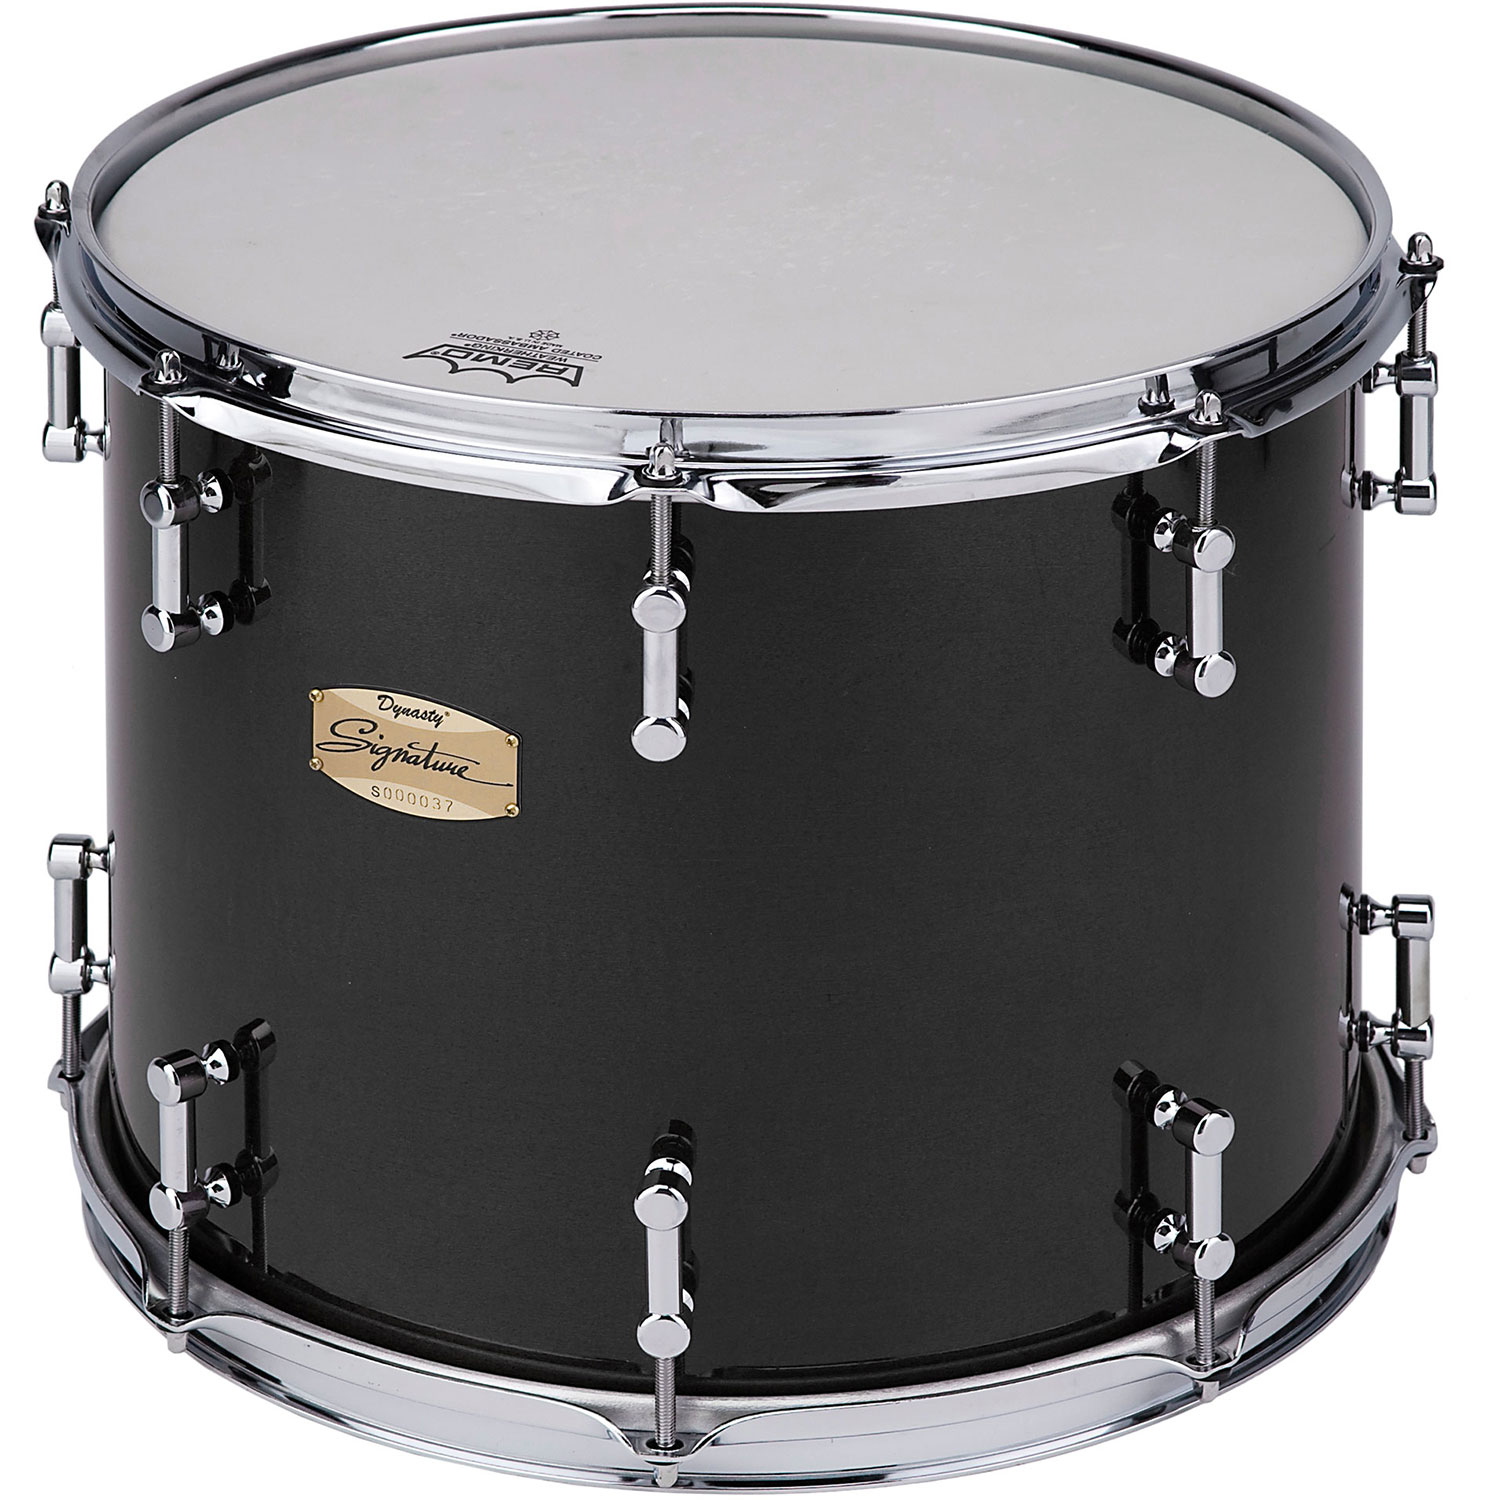 "Dynasty 16"" (Diameter) x 14"" (Deep) Performance Series Double Headed Concert Tom"